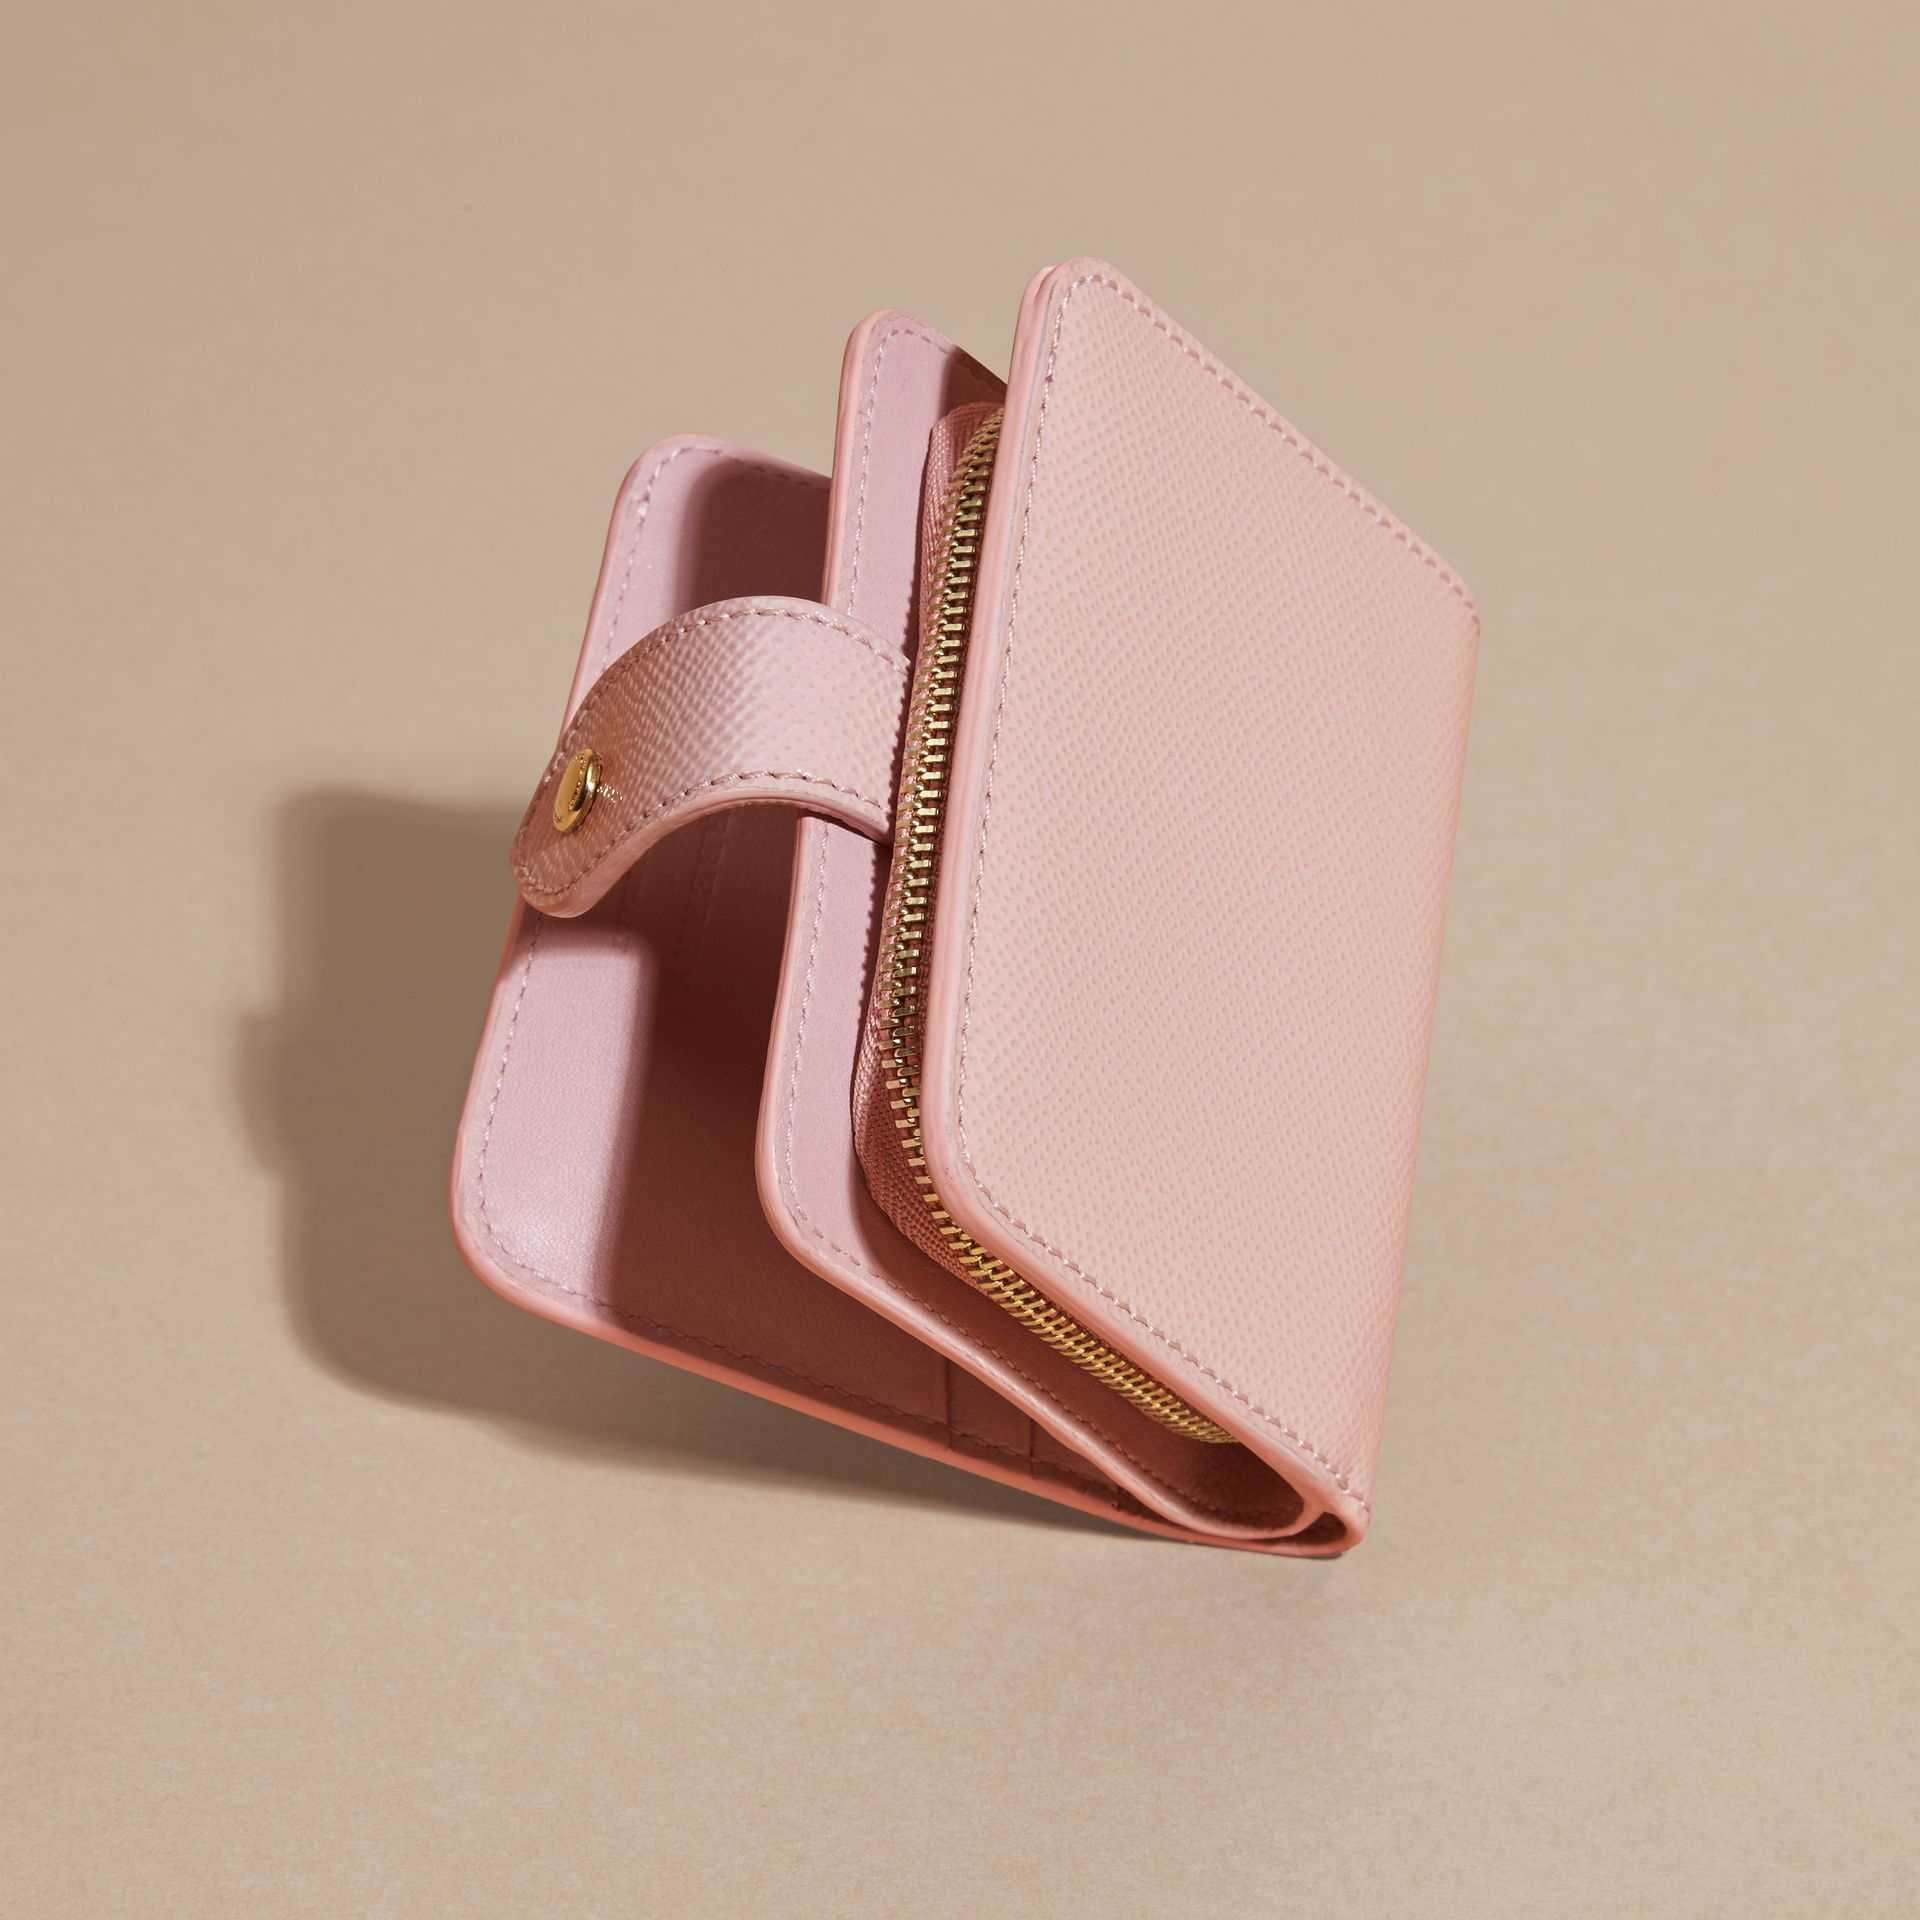 Patent London Leather Wallet in Ash Rose - gallery image 4